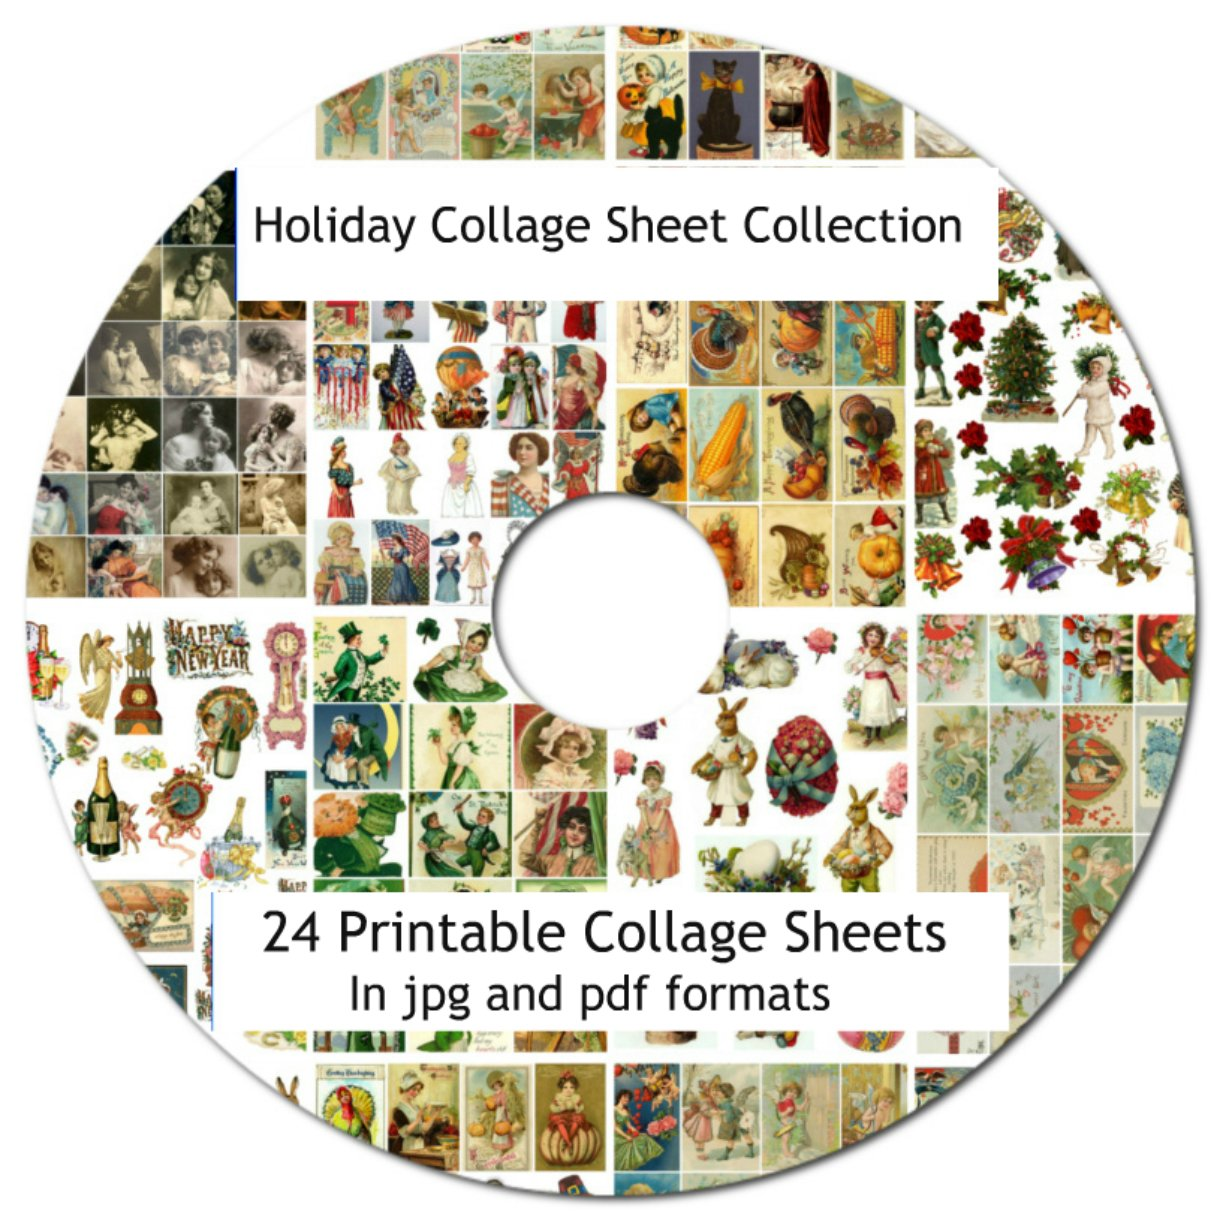 24 Holiday Vintage Collage Sheets Collection 8.5 x 11'' On CD Printabe jpg pdf Scrapbooking, Altered Art, Decoupage